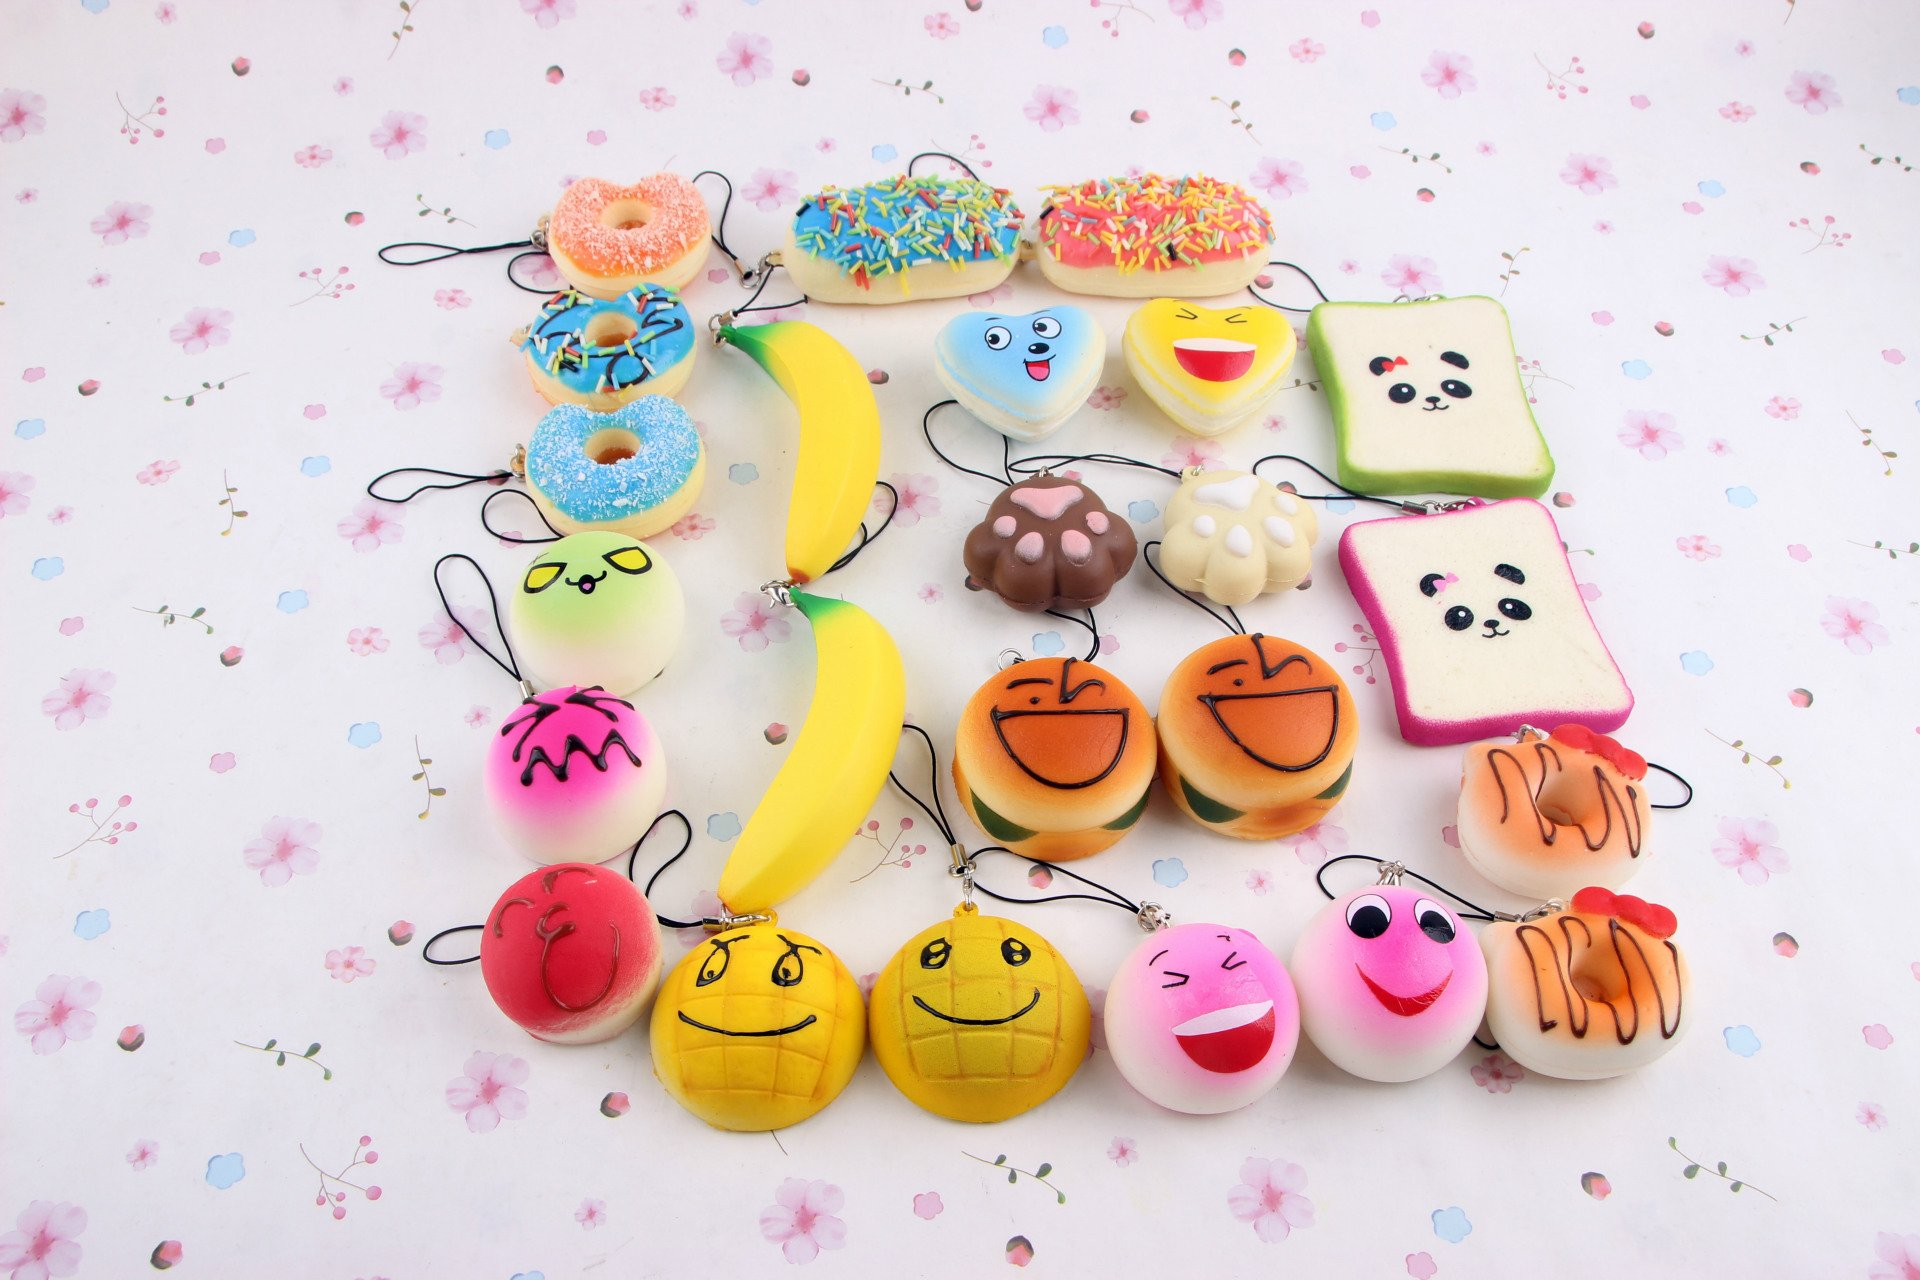 10/15/20 PCS Cute Squishy Jumbo Medium Mini Random Soft Squishy Bread Toys Key Phone Strap Bread Fruit Phone Charm Toys Squishy Slow Rising with Gift Package(Random Colour) (20PCS)